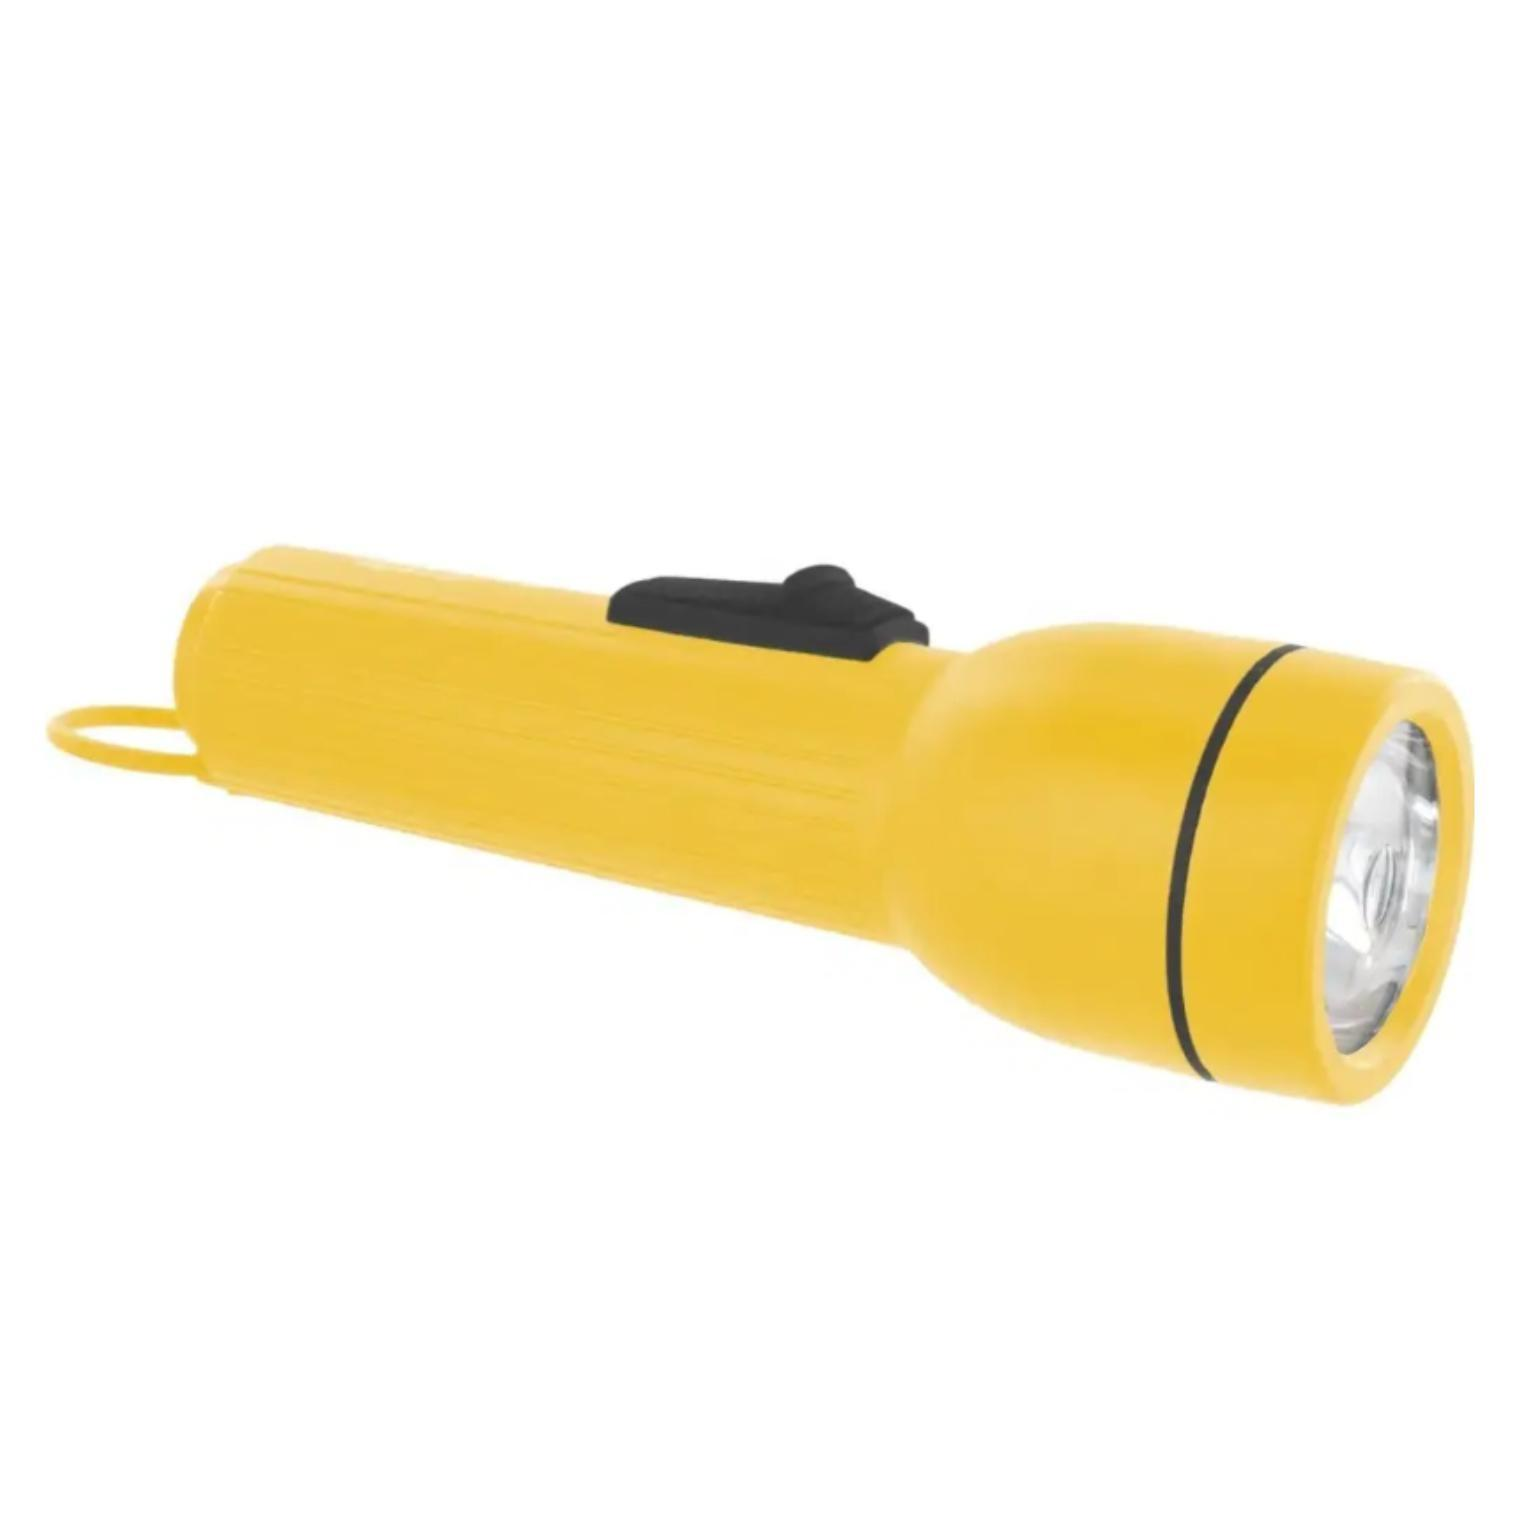 Zaklamp - Led - 35 lumen